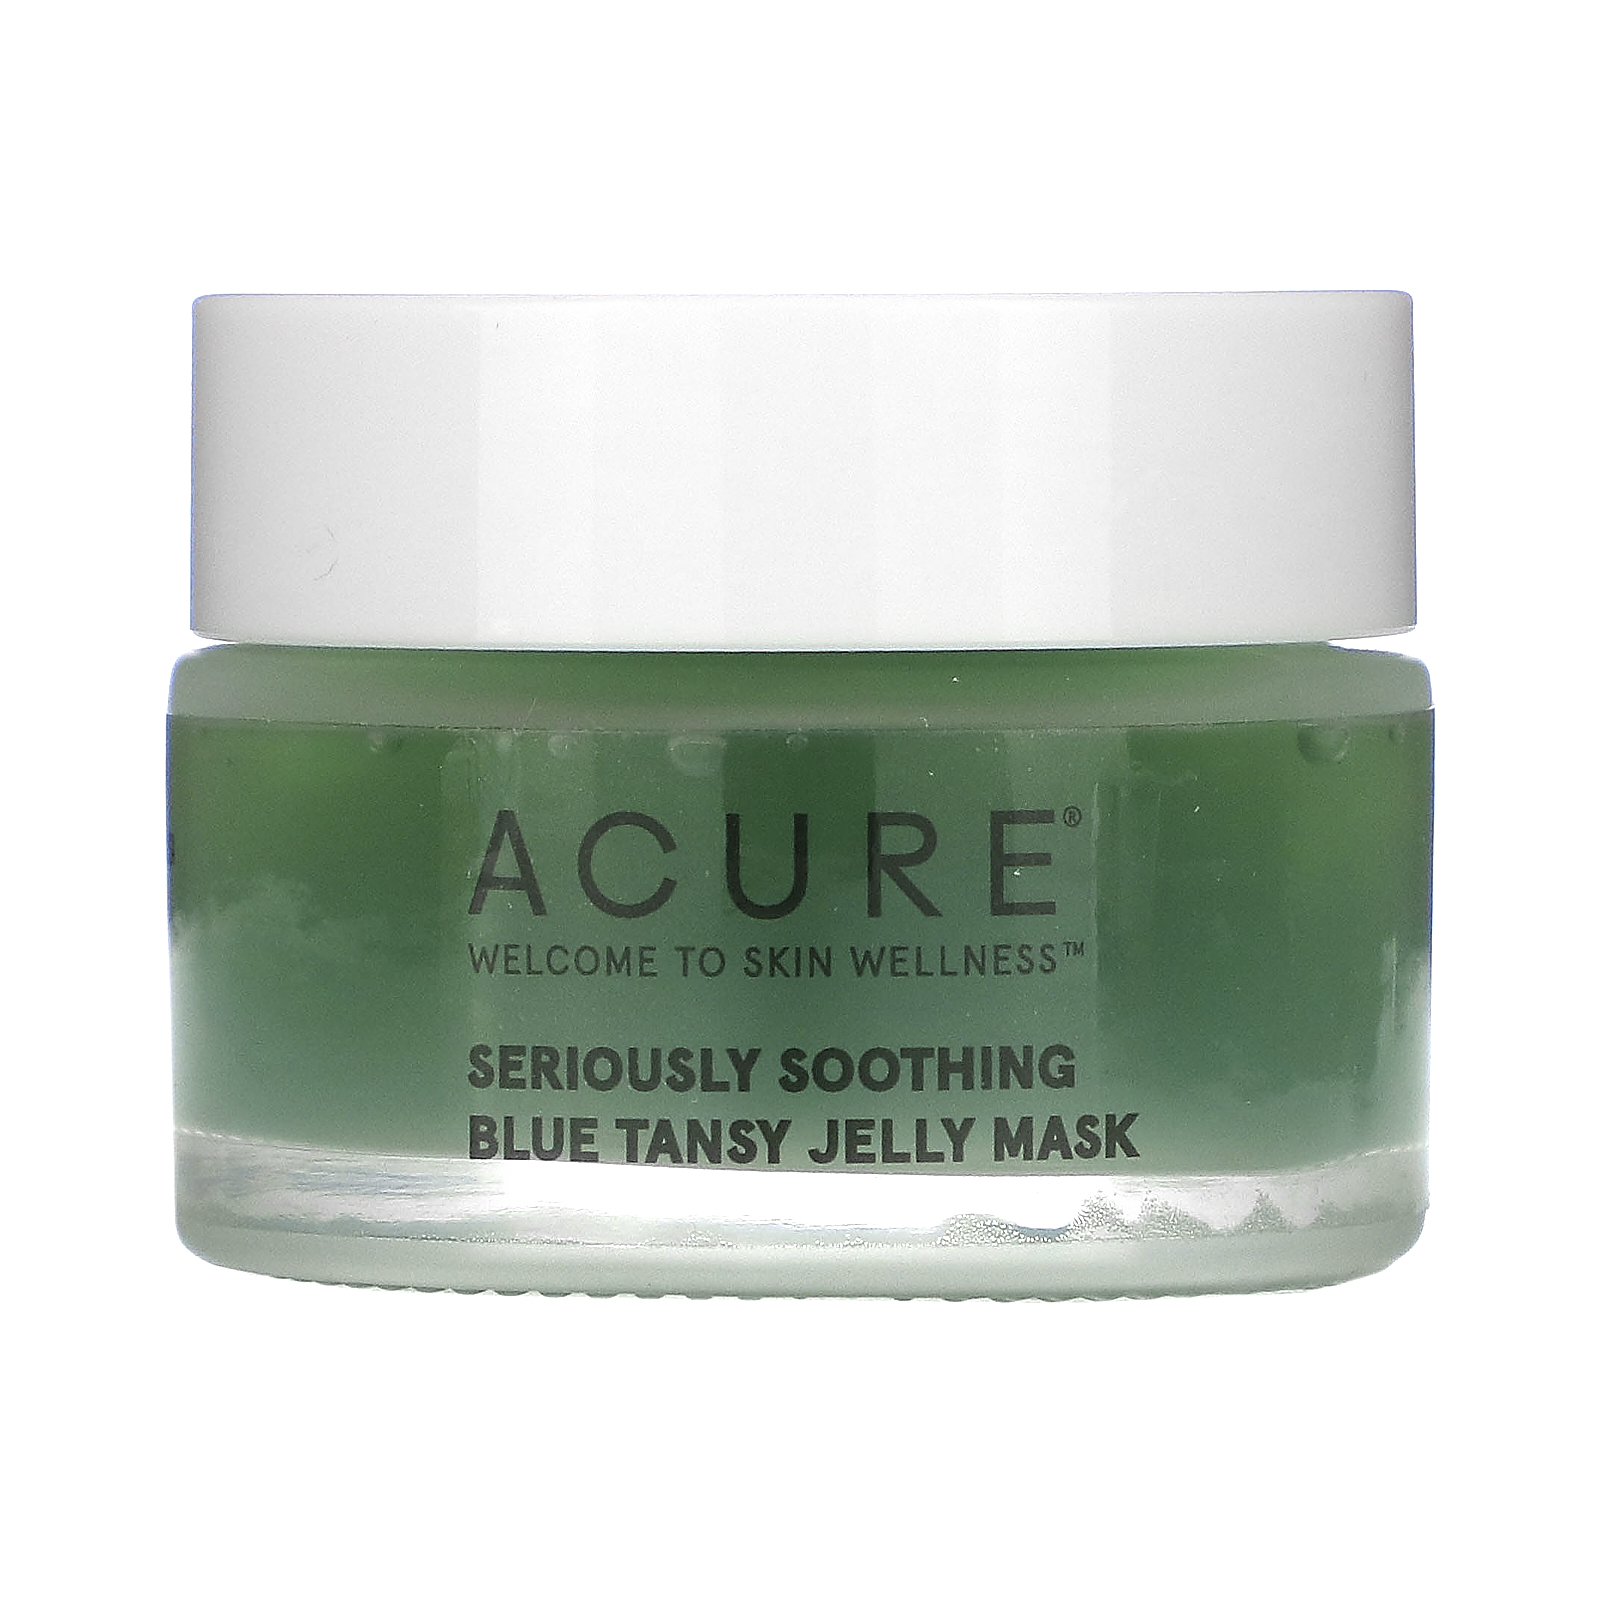 Acure, Seriously Soothing, Blue Tansy Jelly Mask, 1 fl oz (30 ml)